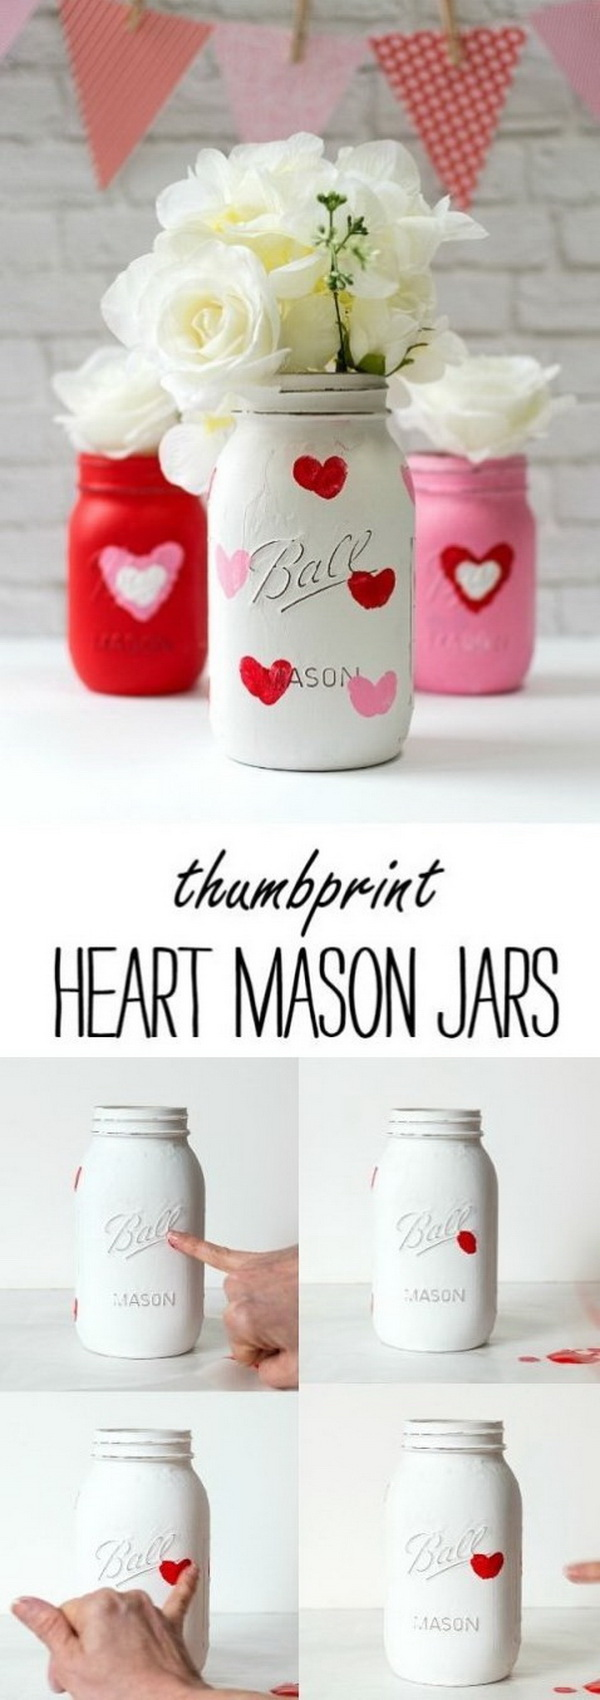 Mason Jar Craft Ideas for Valentines Day - Painted Distressed Mason Jars with Thumbprint Hearts.